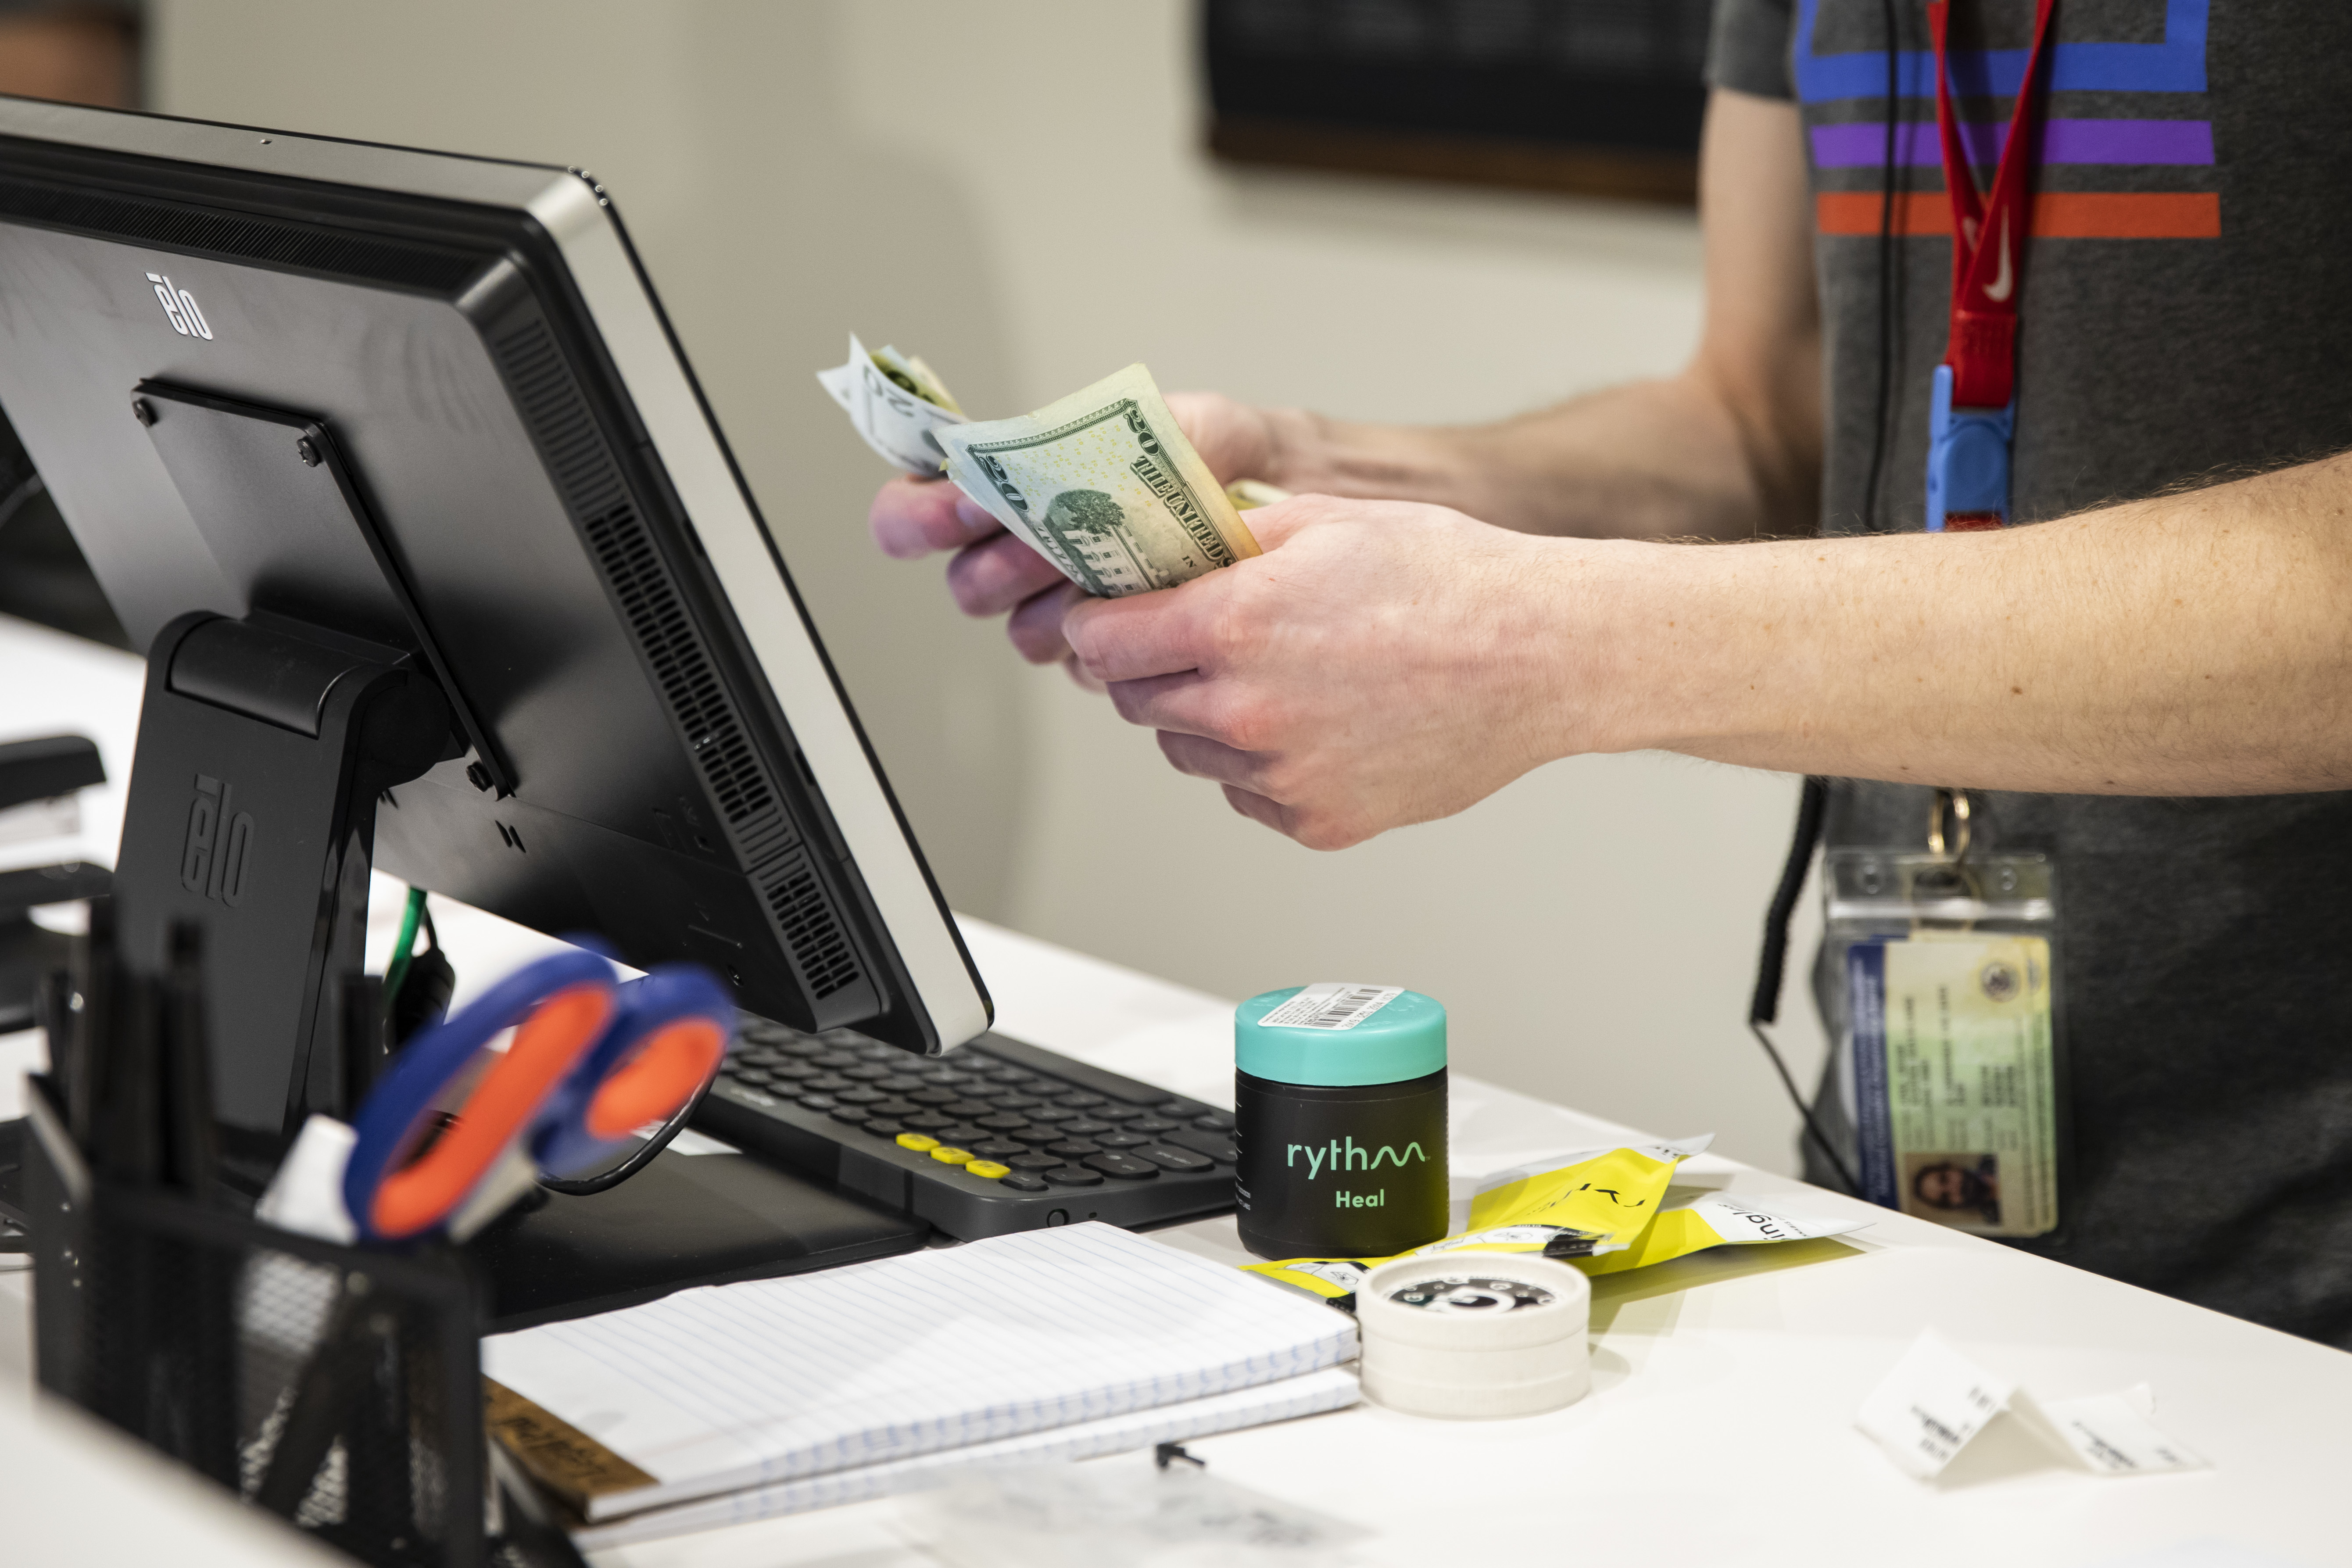 The first batch of customers make their purchases at Rise Joliet. A new ordinance aims to streamline the zoning process to attract a flood of new cannabis license winners.